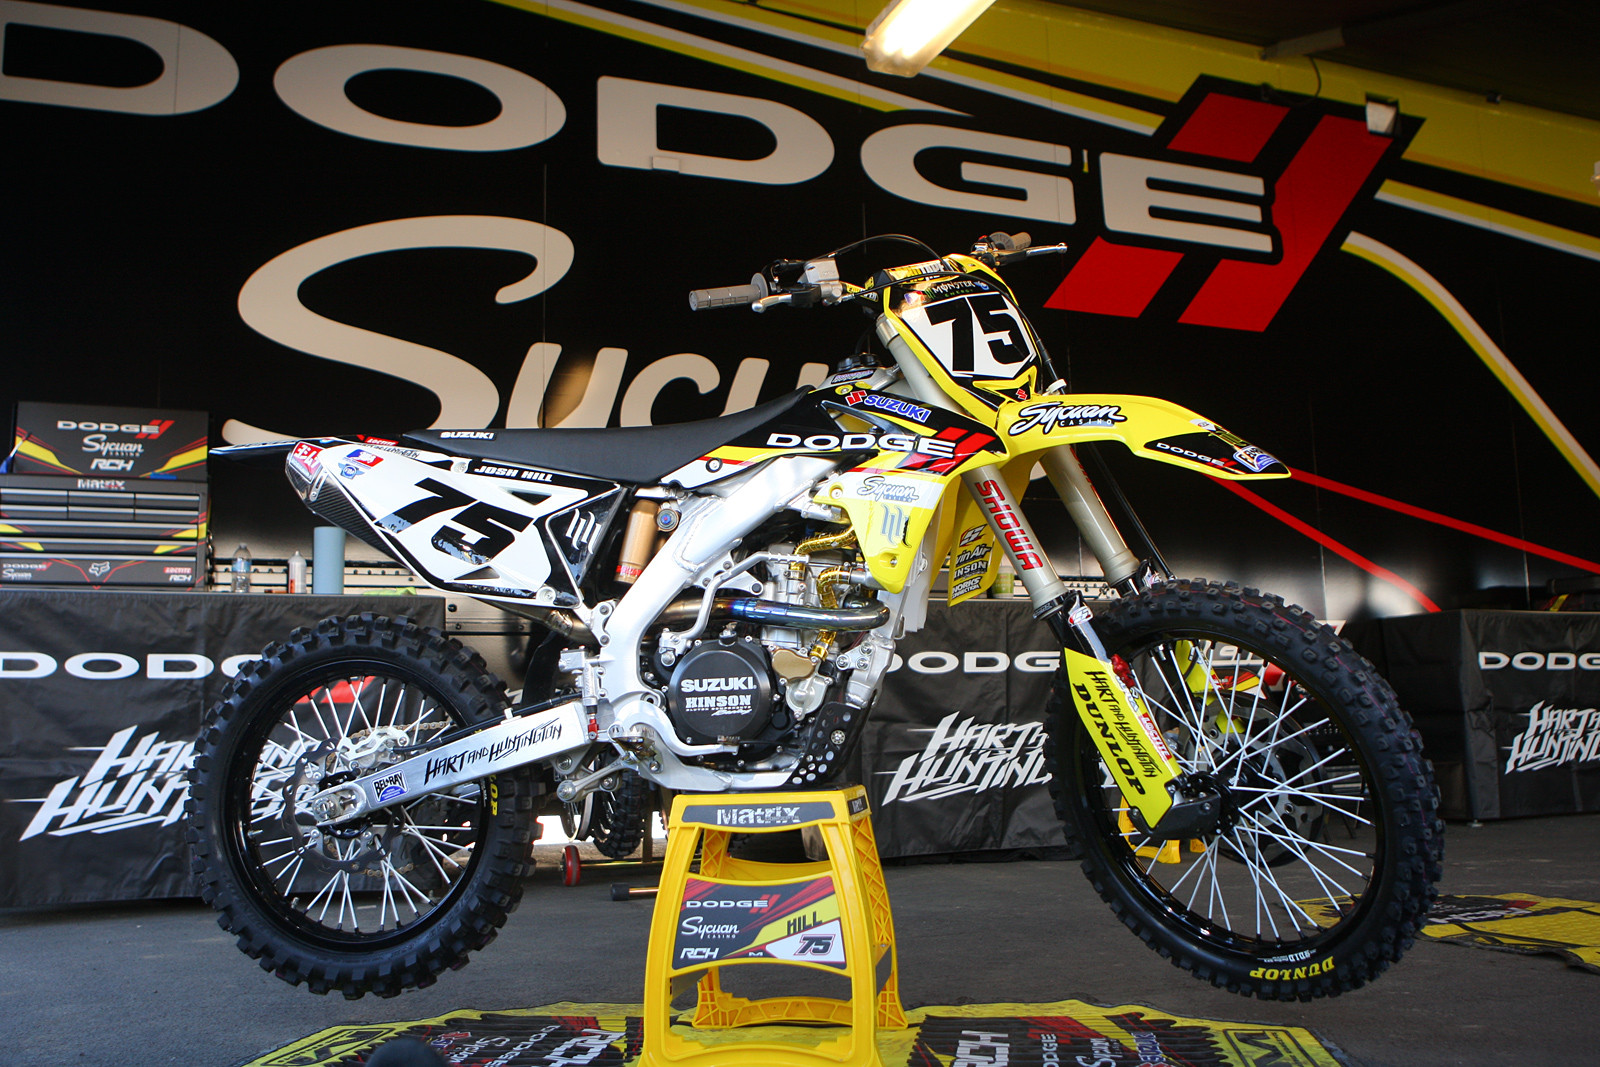 Racing Caf 232 Supercross Racing Motorcycles 450 Class 2013